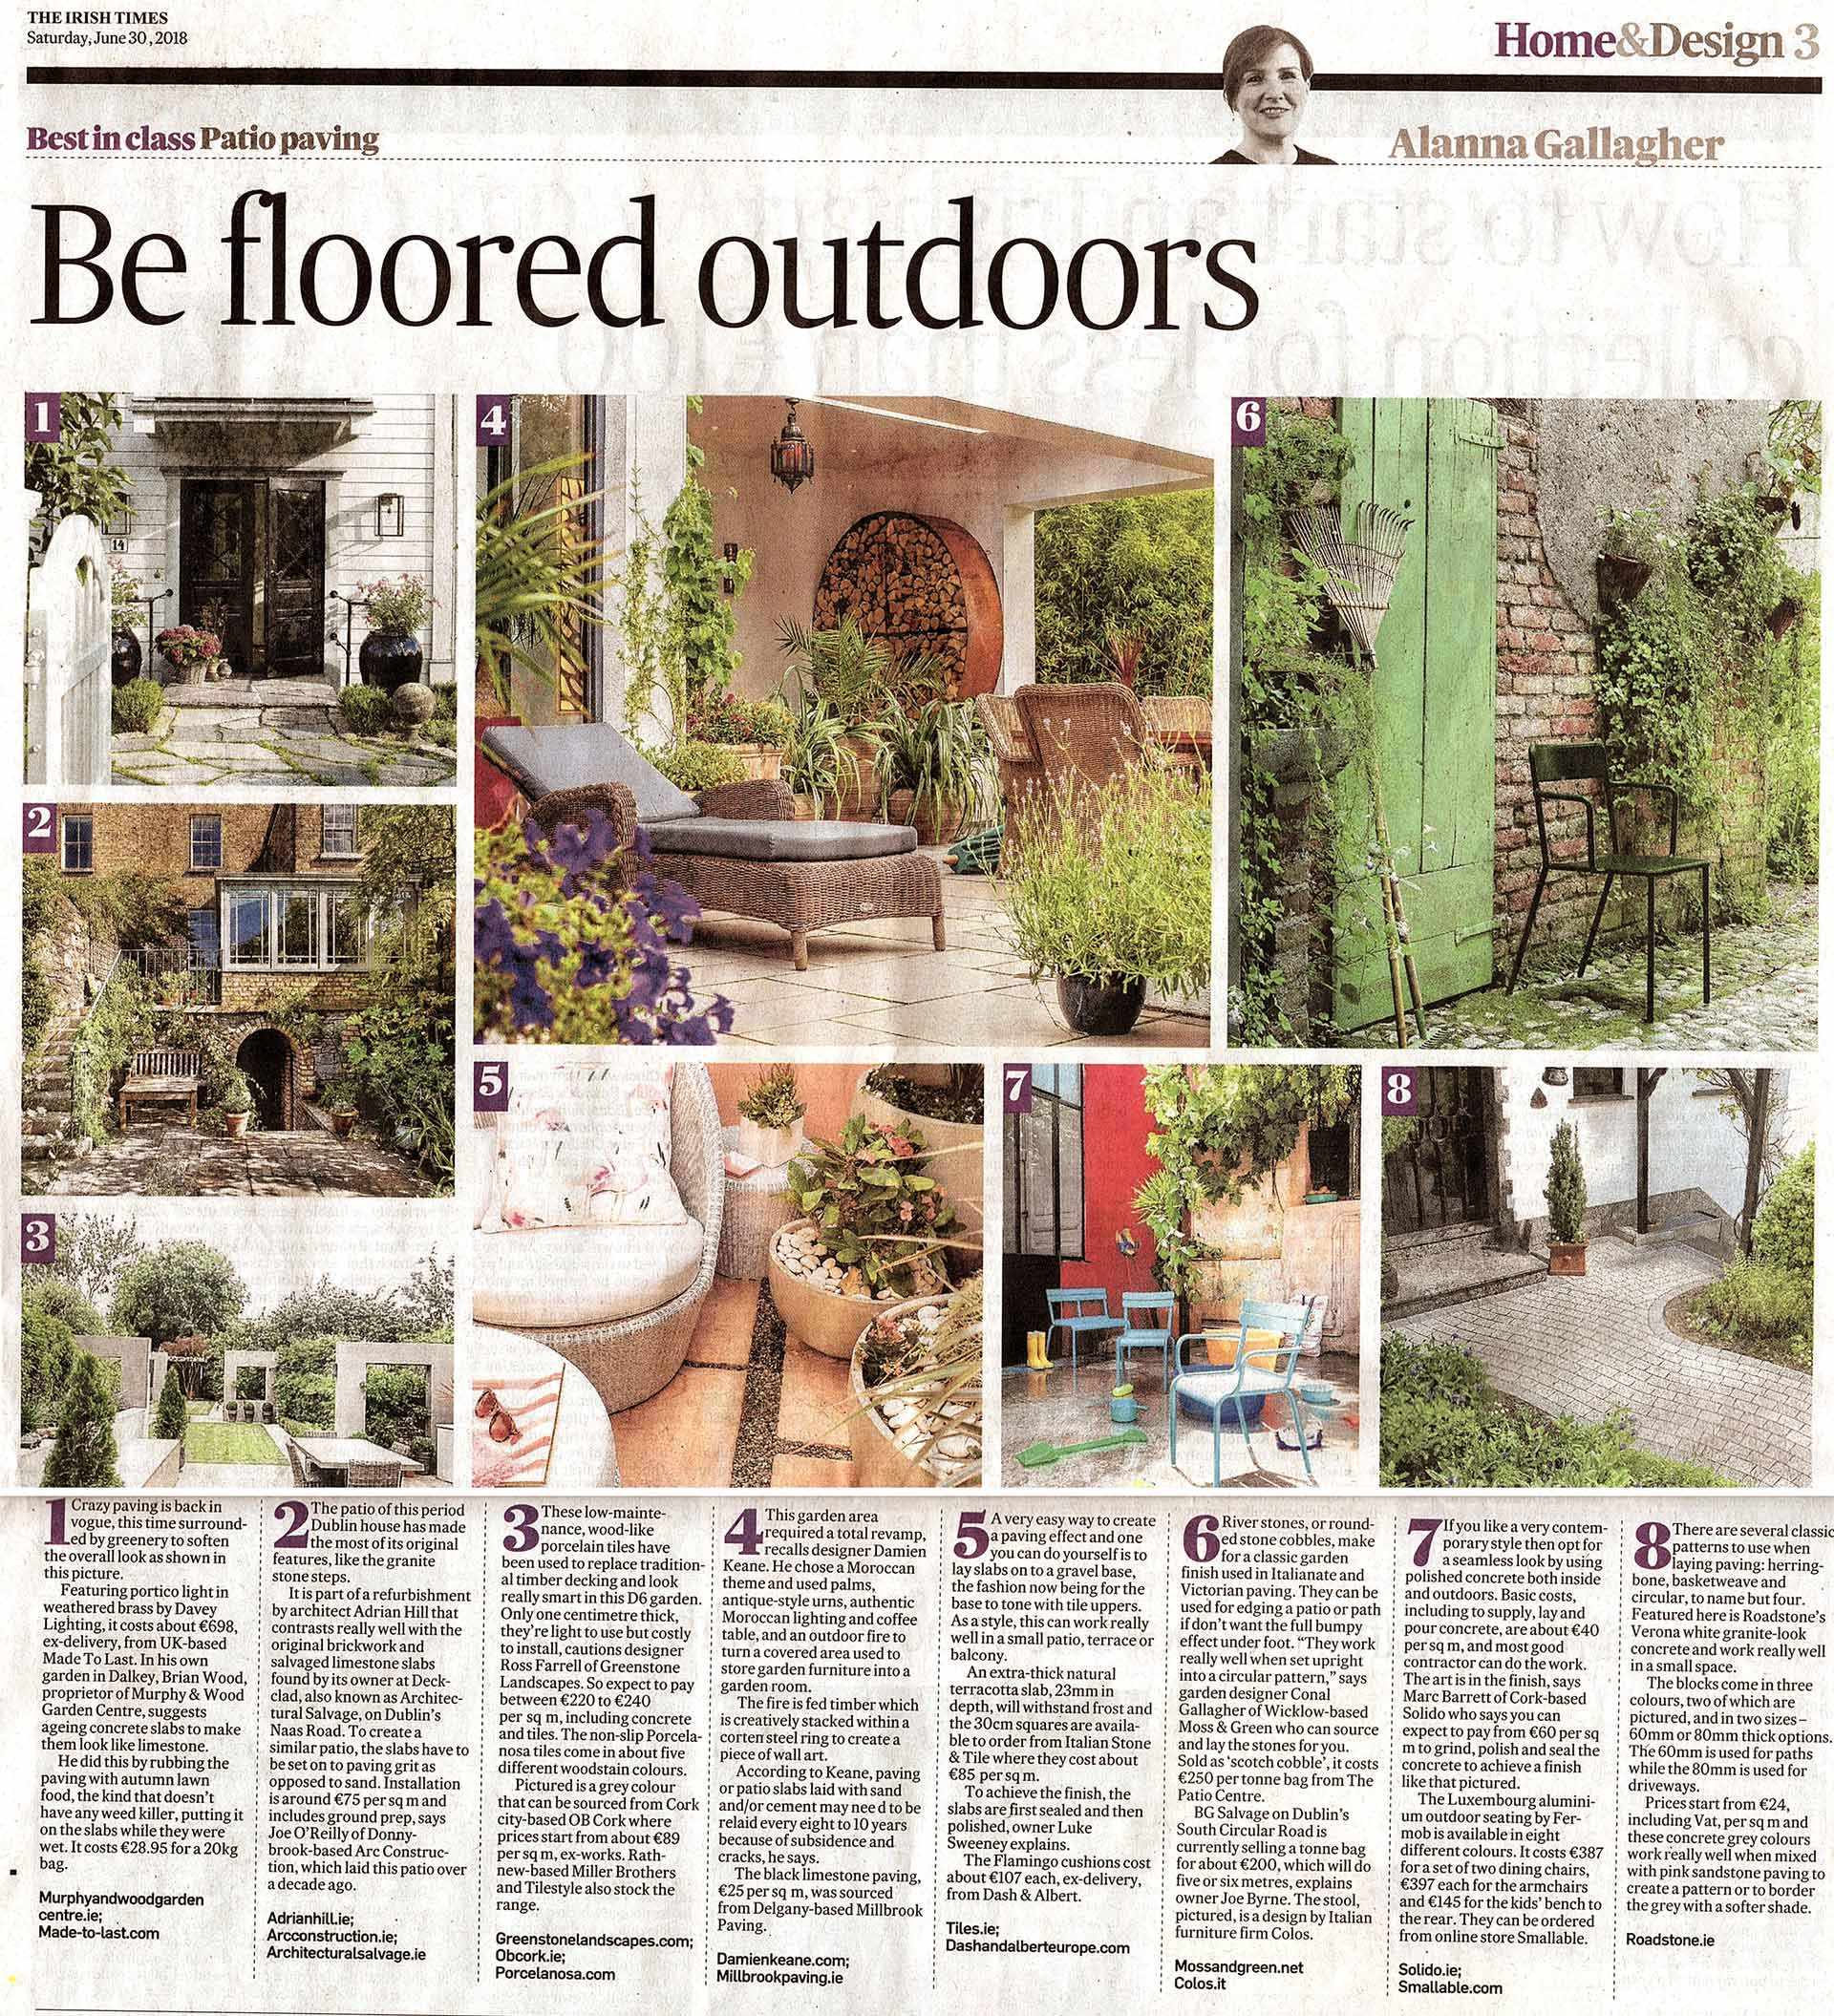 gardening story in the irish times June 29th 2018